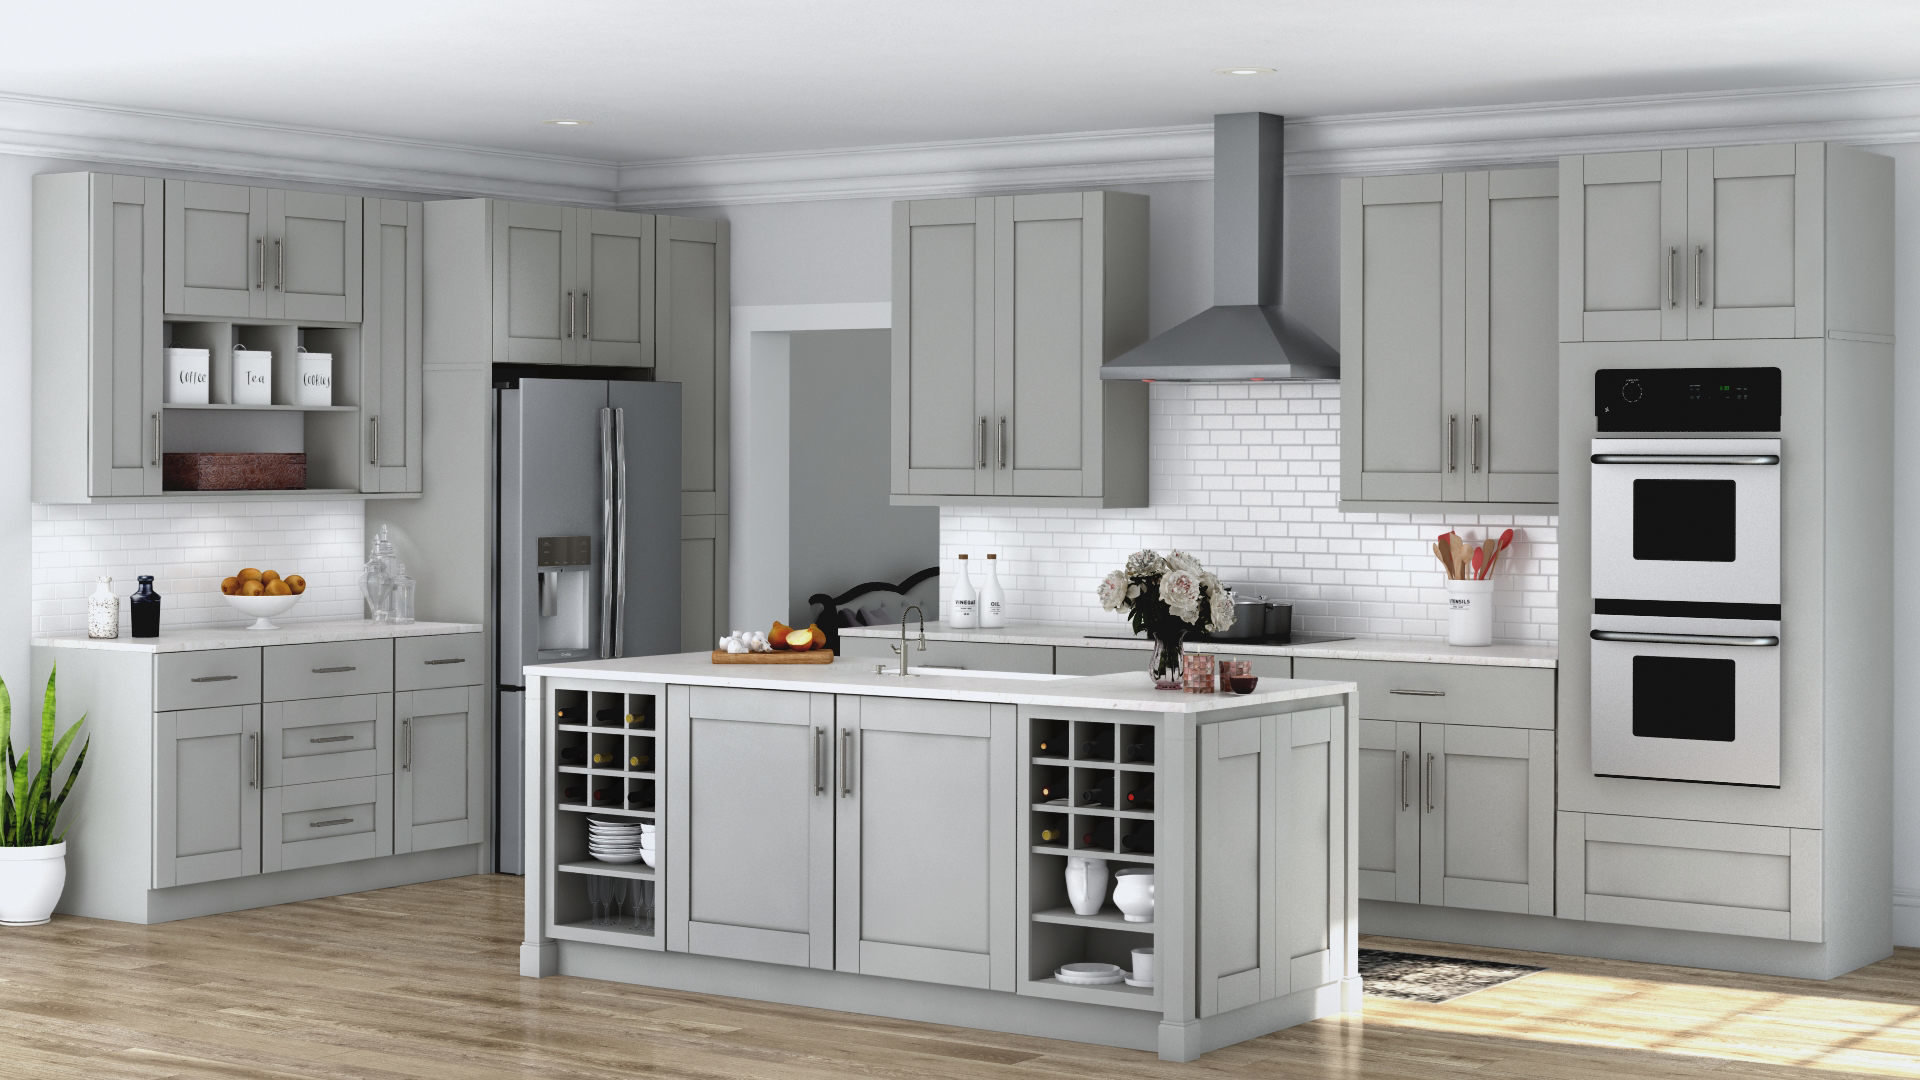 Shaker Specialty Cabinets in Dove Gray – Kitchen – The Home Depot